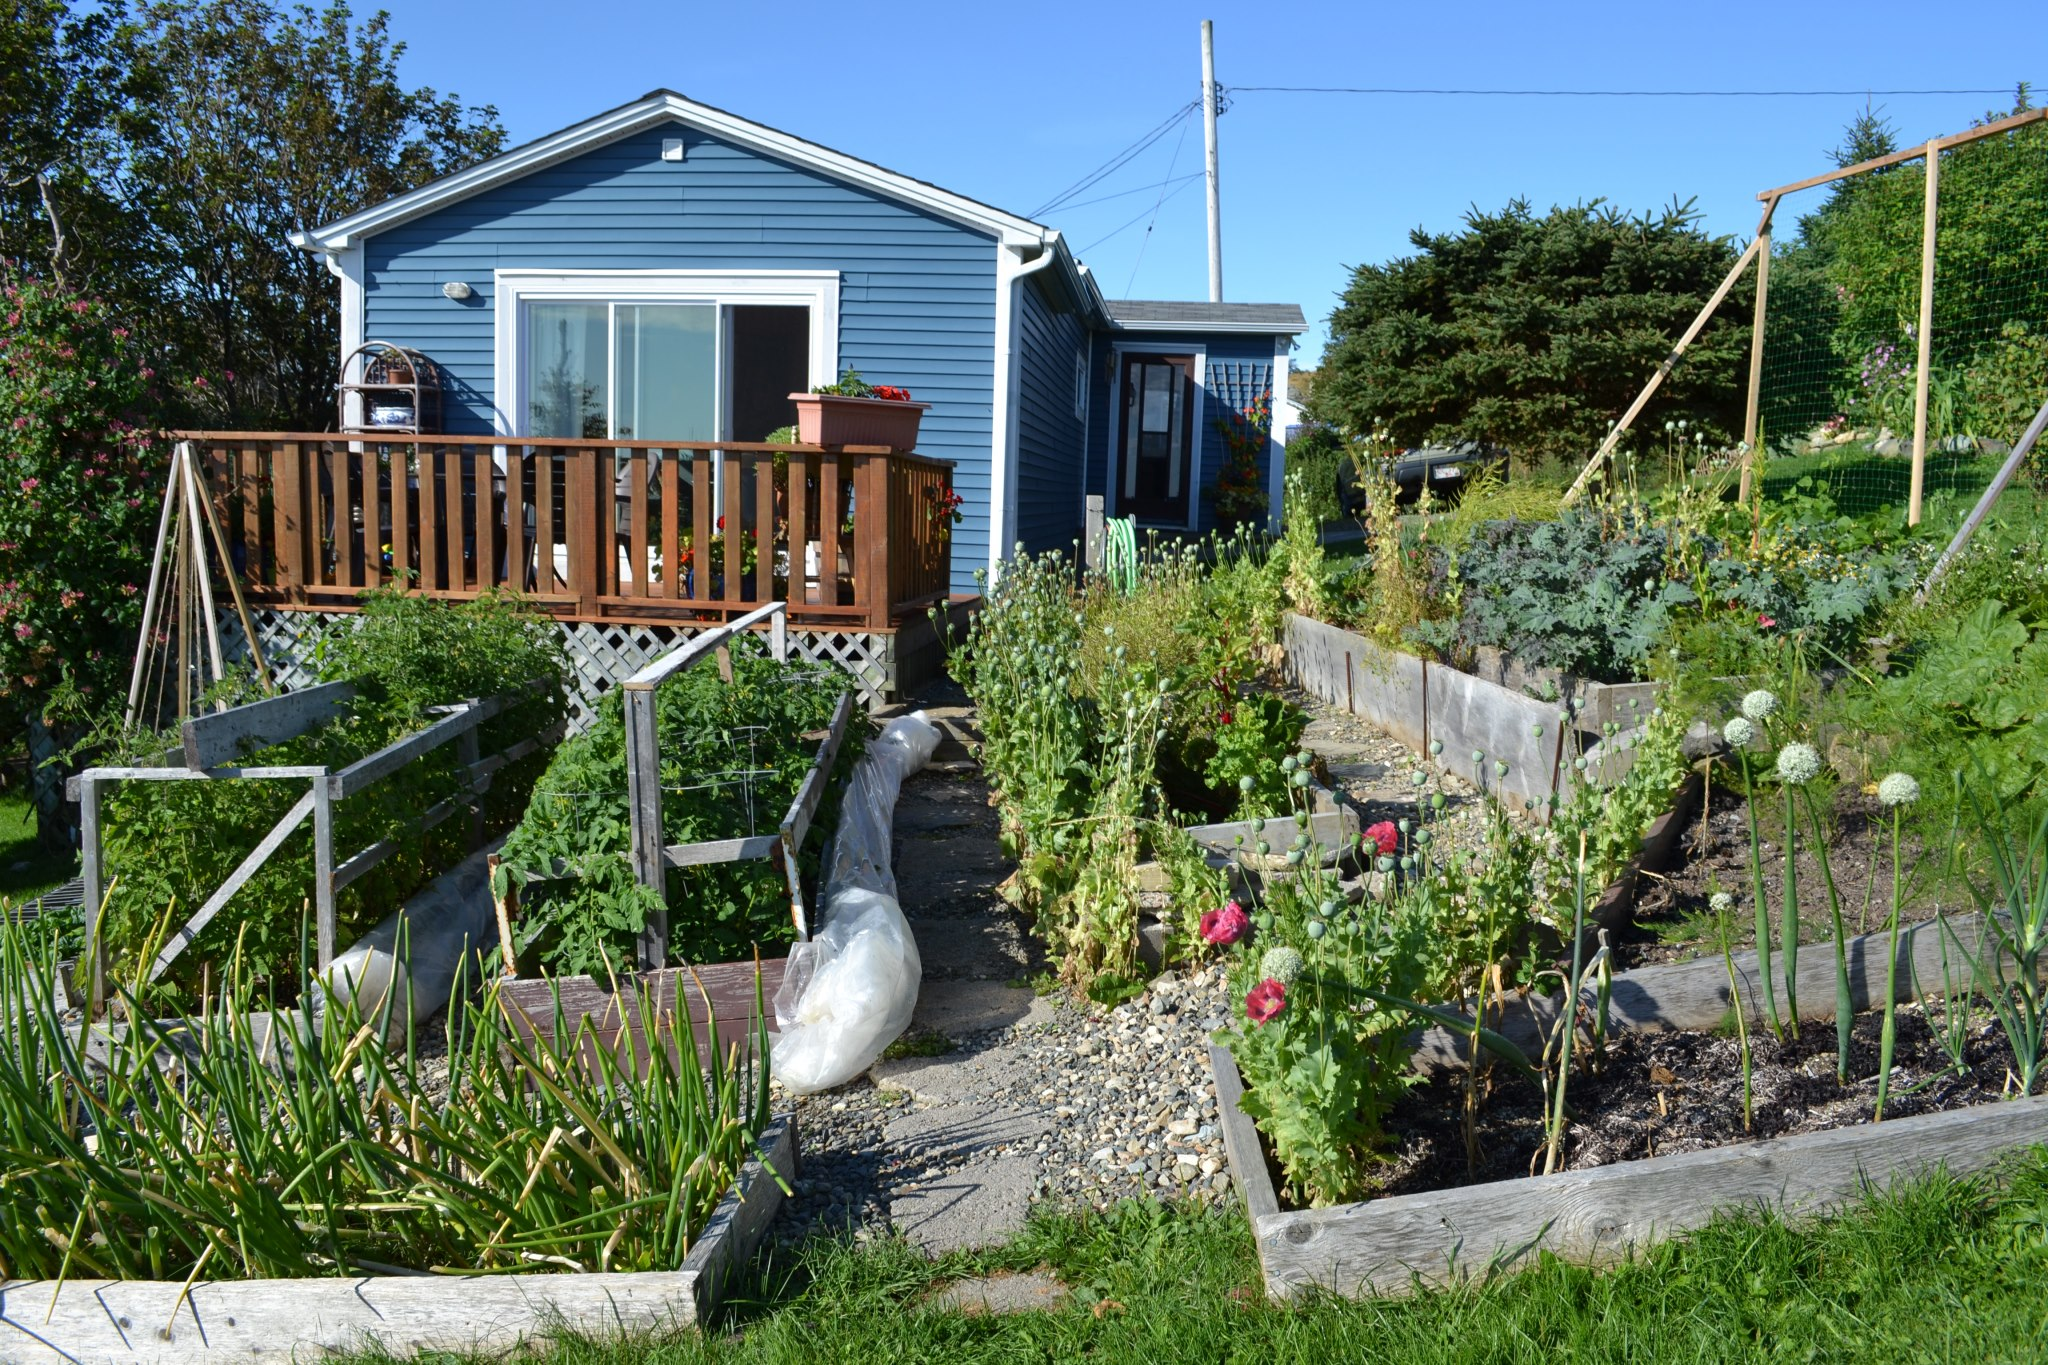 Workshop participants will tour this home raised bed garden as well as another nearby home garden and Community Garden.